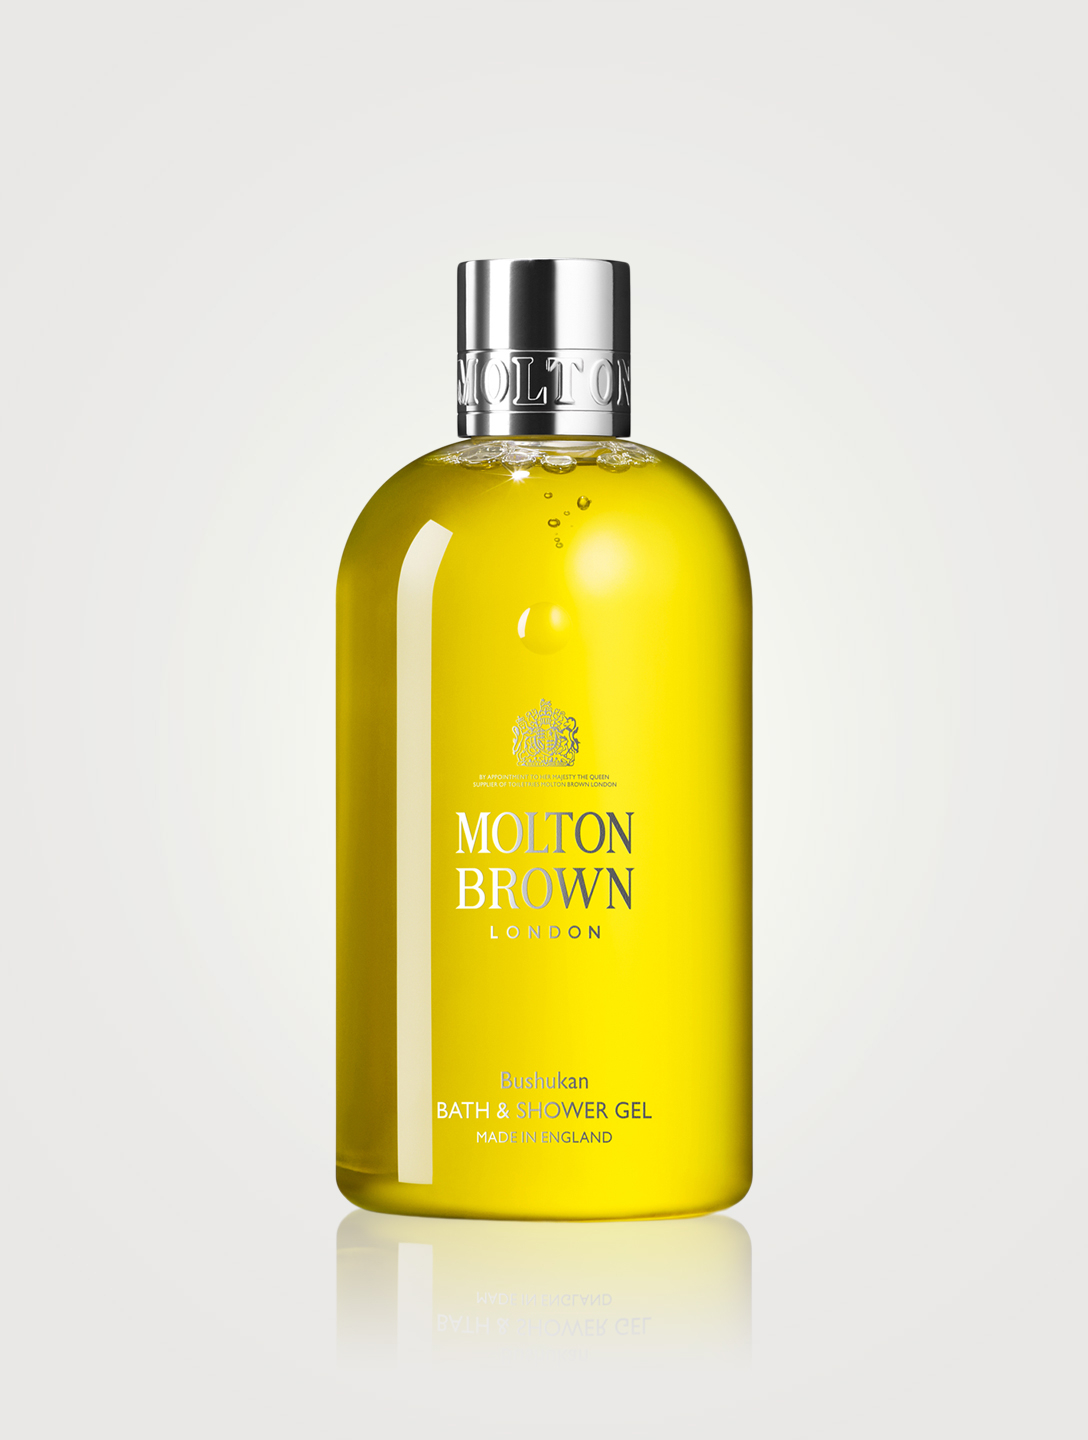 MOLTON BROWN Bushukan Bath & Shower Gel Beauty